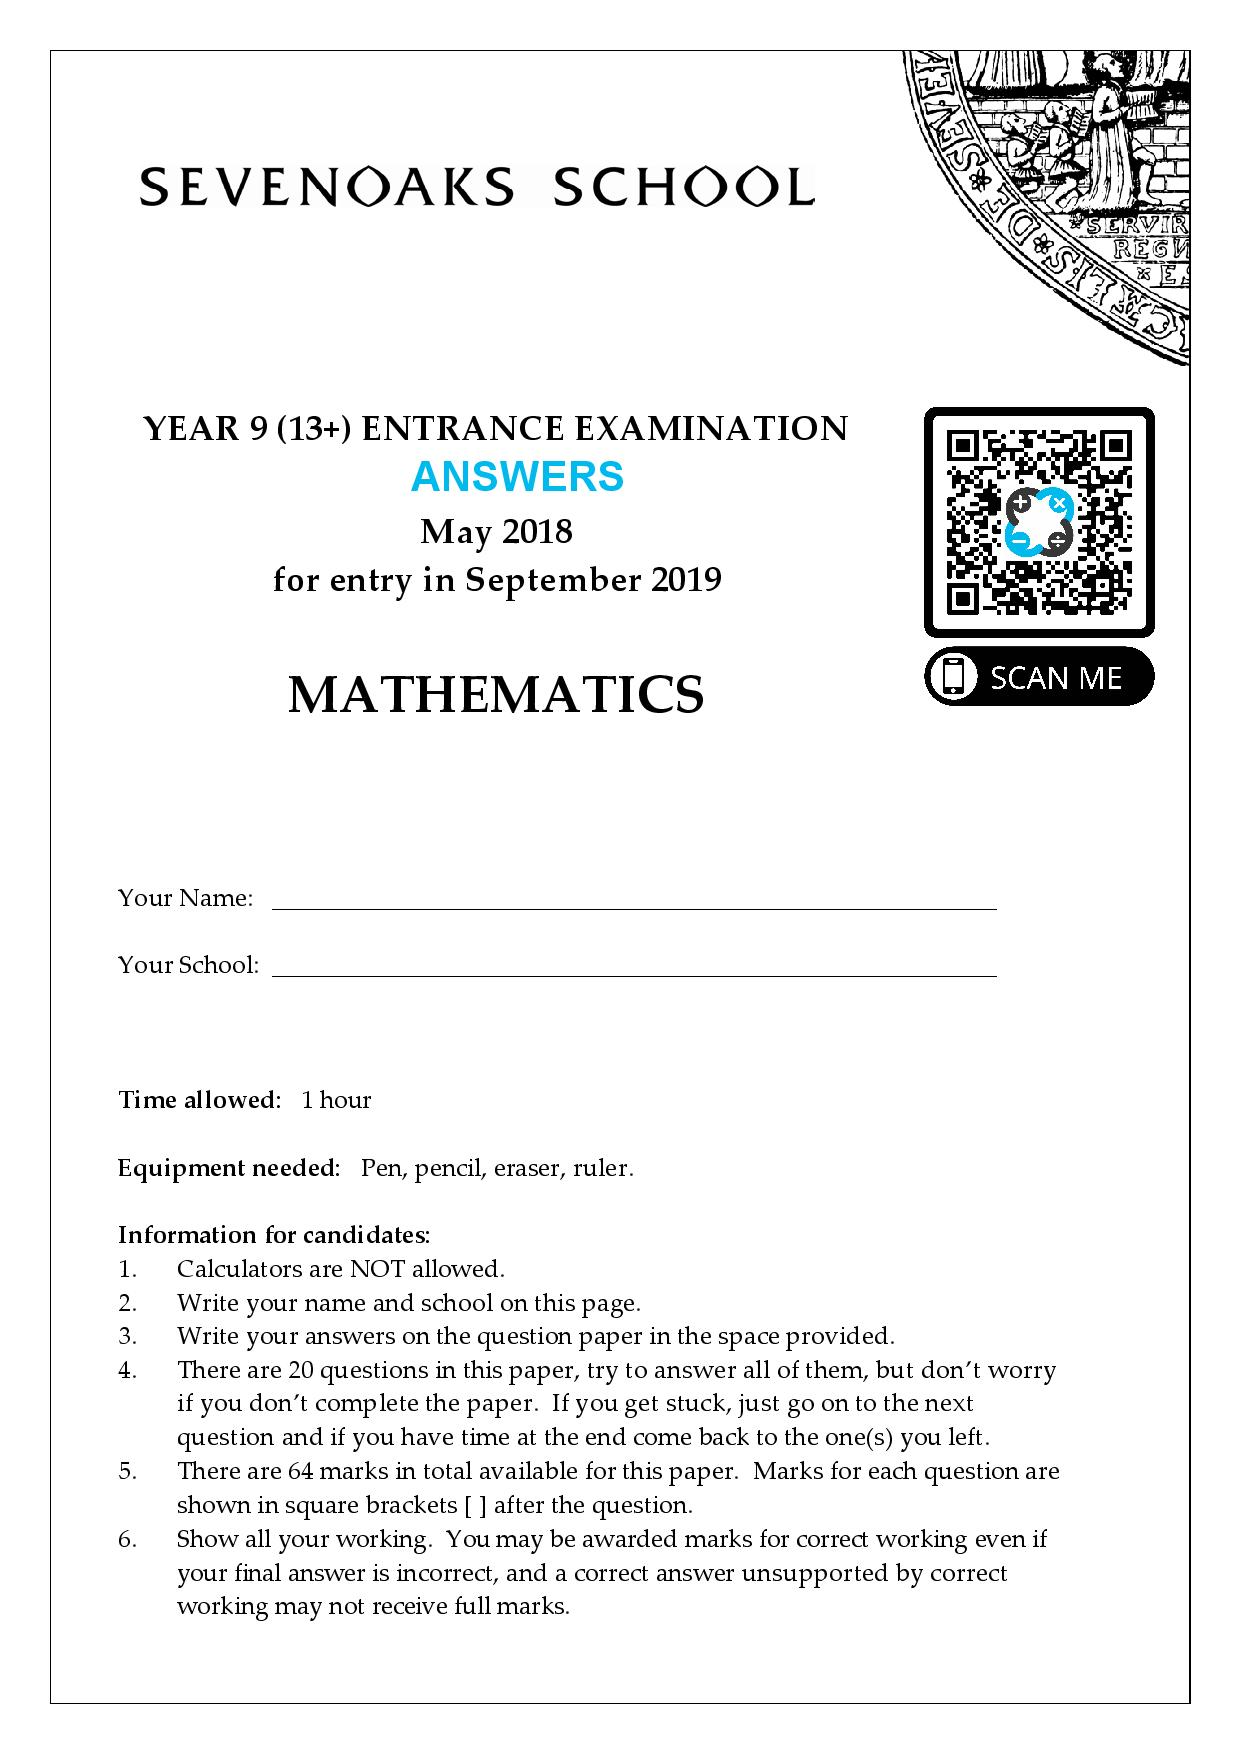 YEAR 9 13 ENTRANCE EXAMINATION 2018 Answer Paper page 001 2